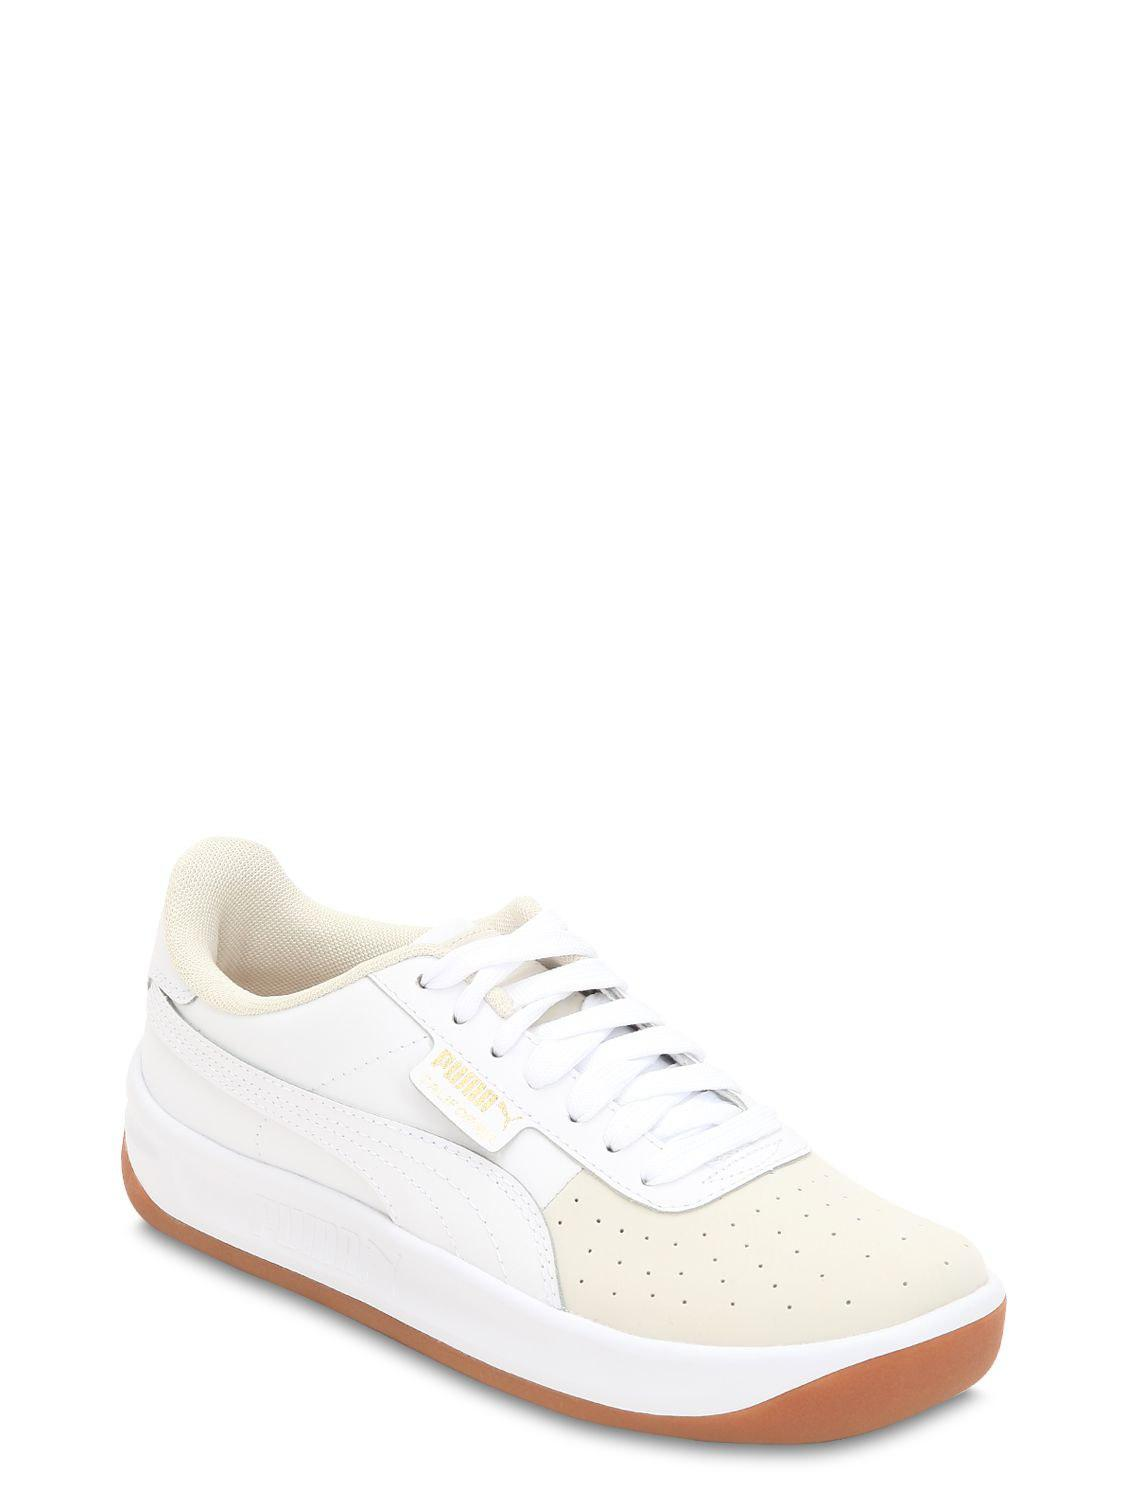 1cae8d63648 Lyst - Puma Select California Exotic Leather Sneakers in White